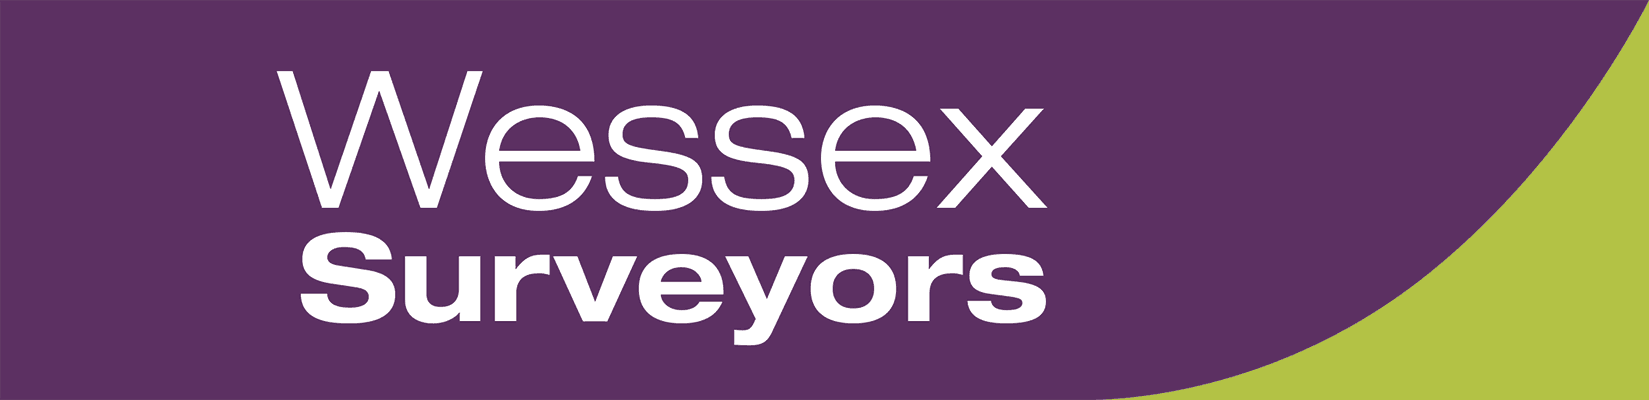 Wessex Surveyors